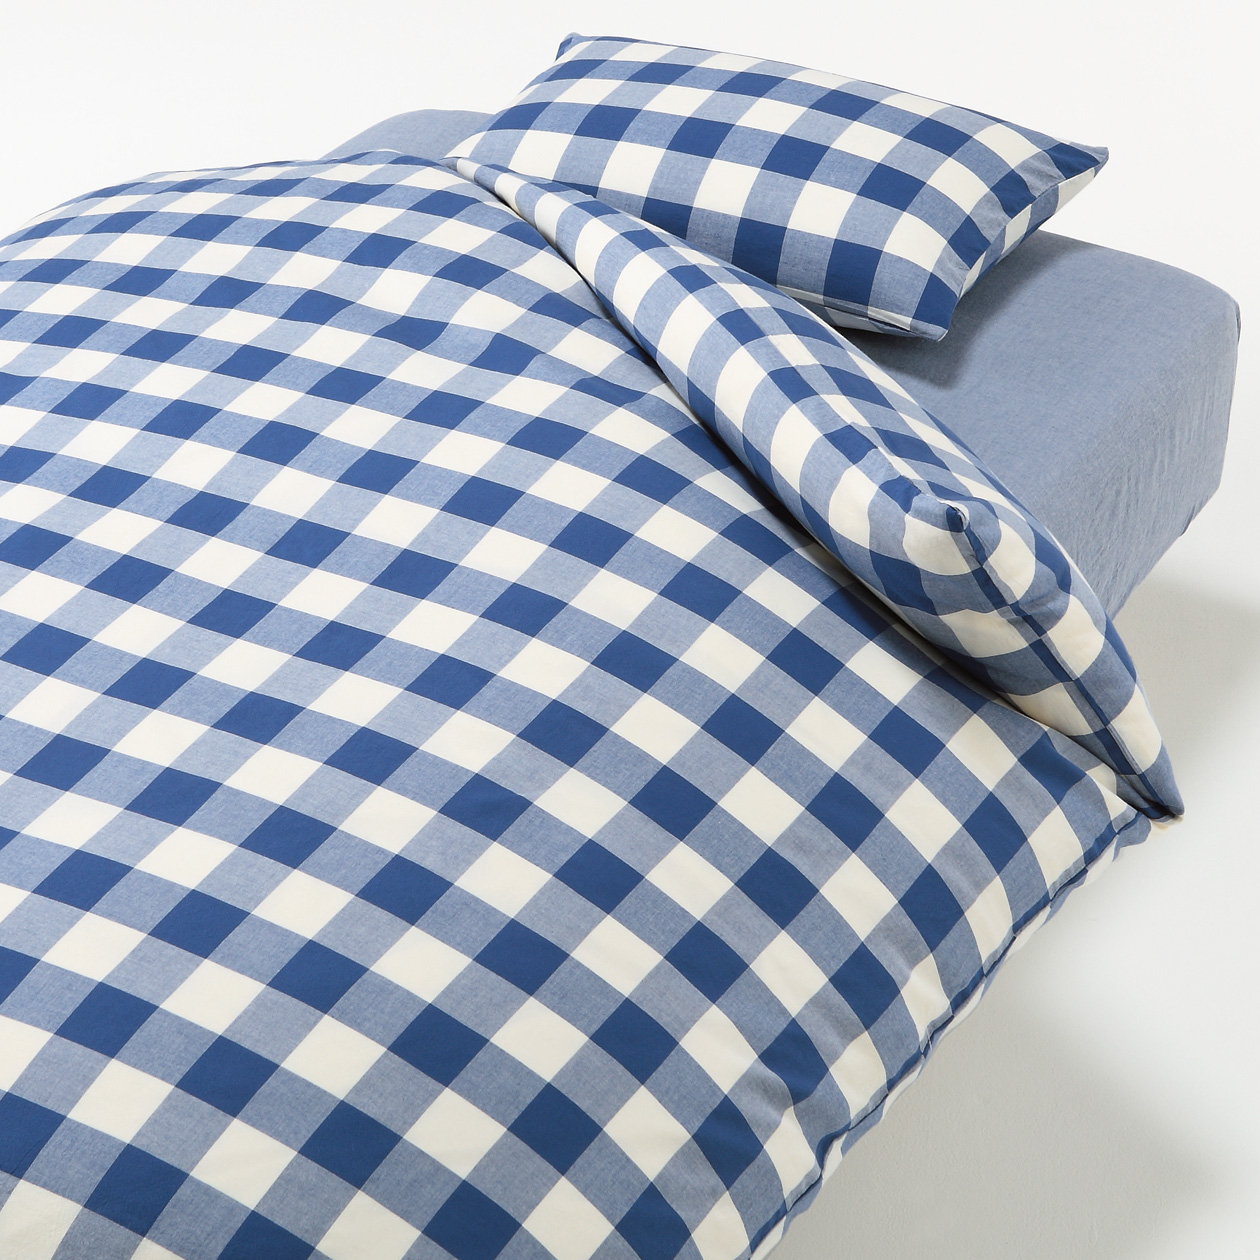 COVER SET FOR BED D BLUE CHECK